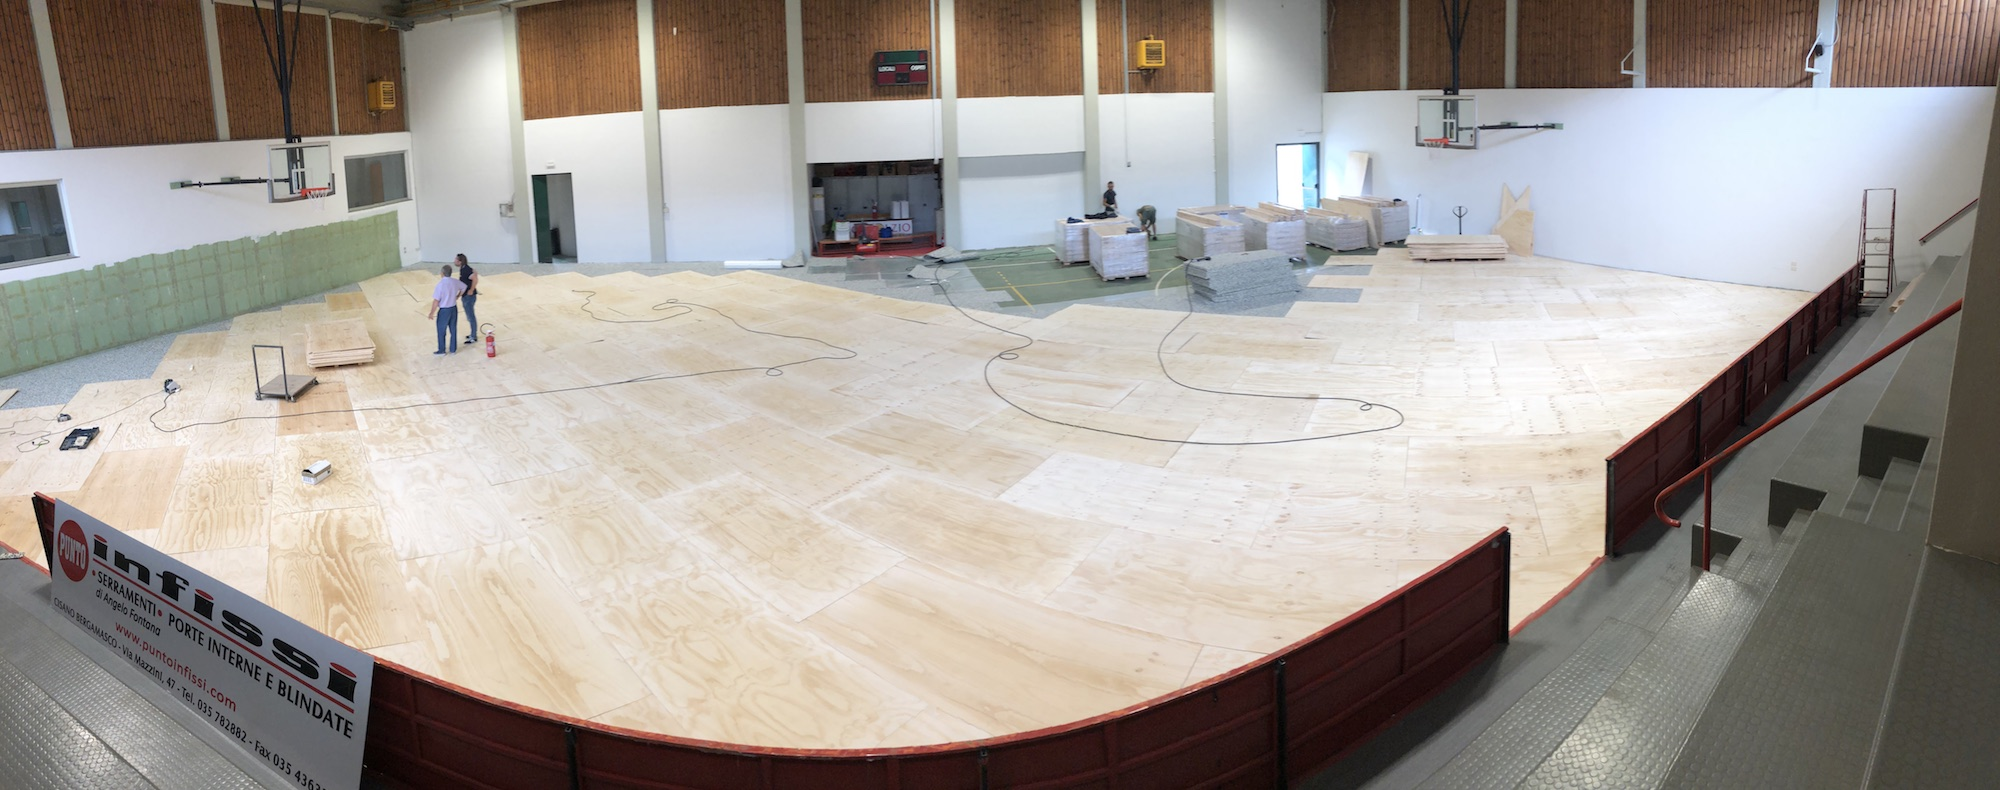 The installation of the plywood floor divider